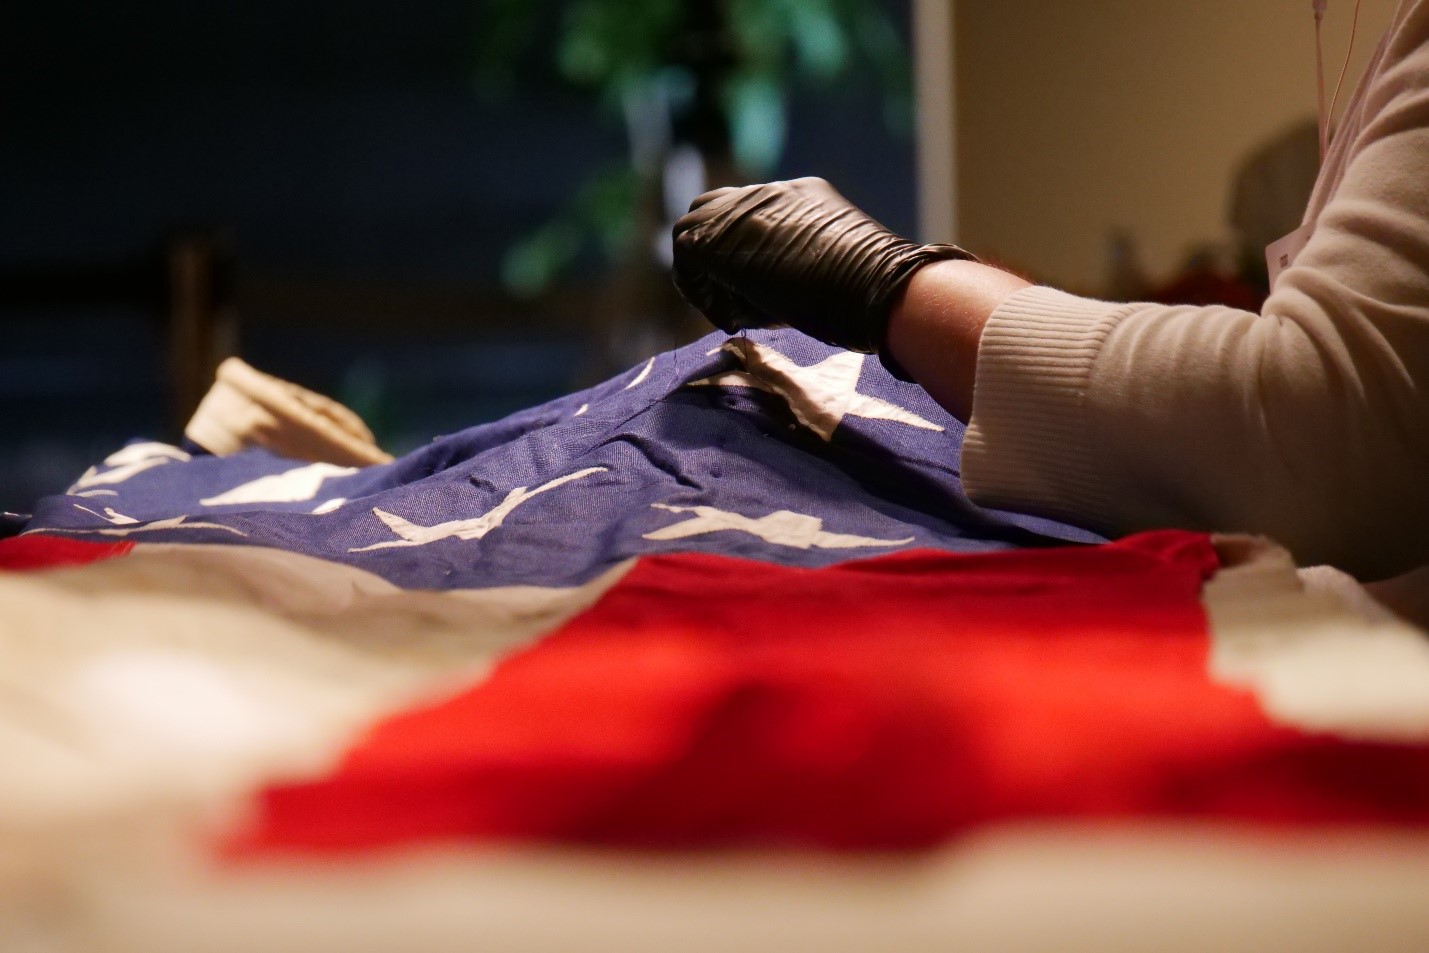 A textiles conservator carefully prepares the U.S. Senate wing flag for installation as part of the Mourning a President exhibit at The Sixth Floor Museum at Dealey Plaza